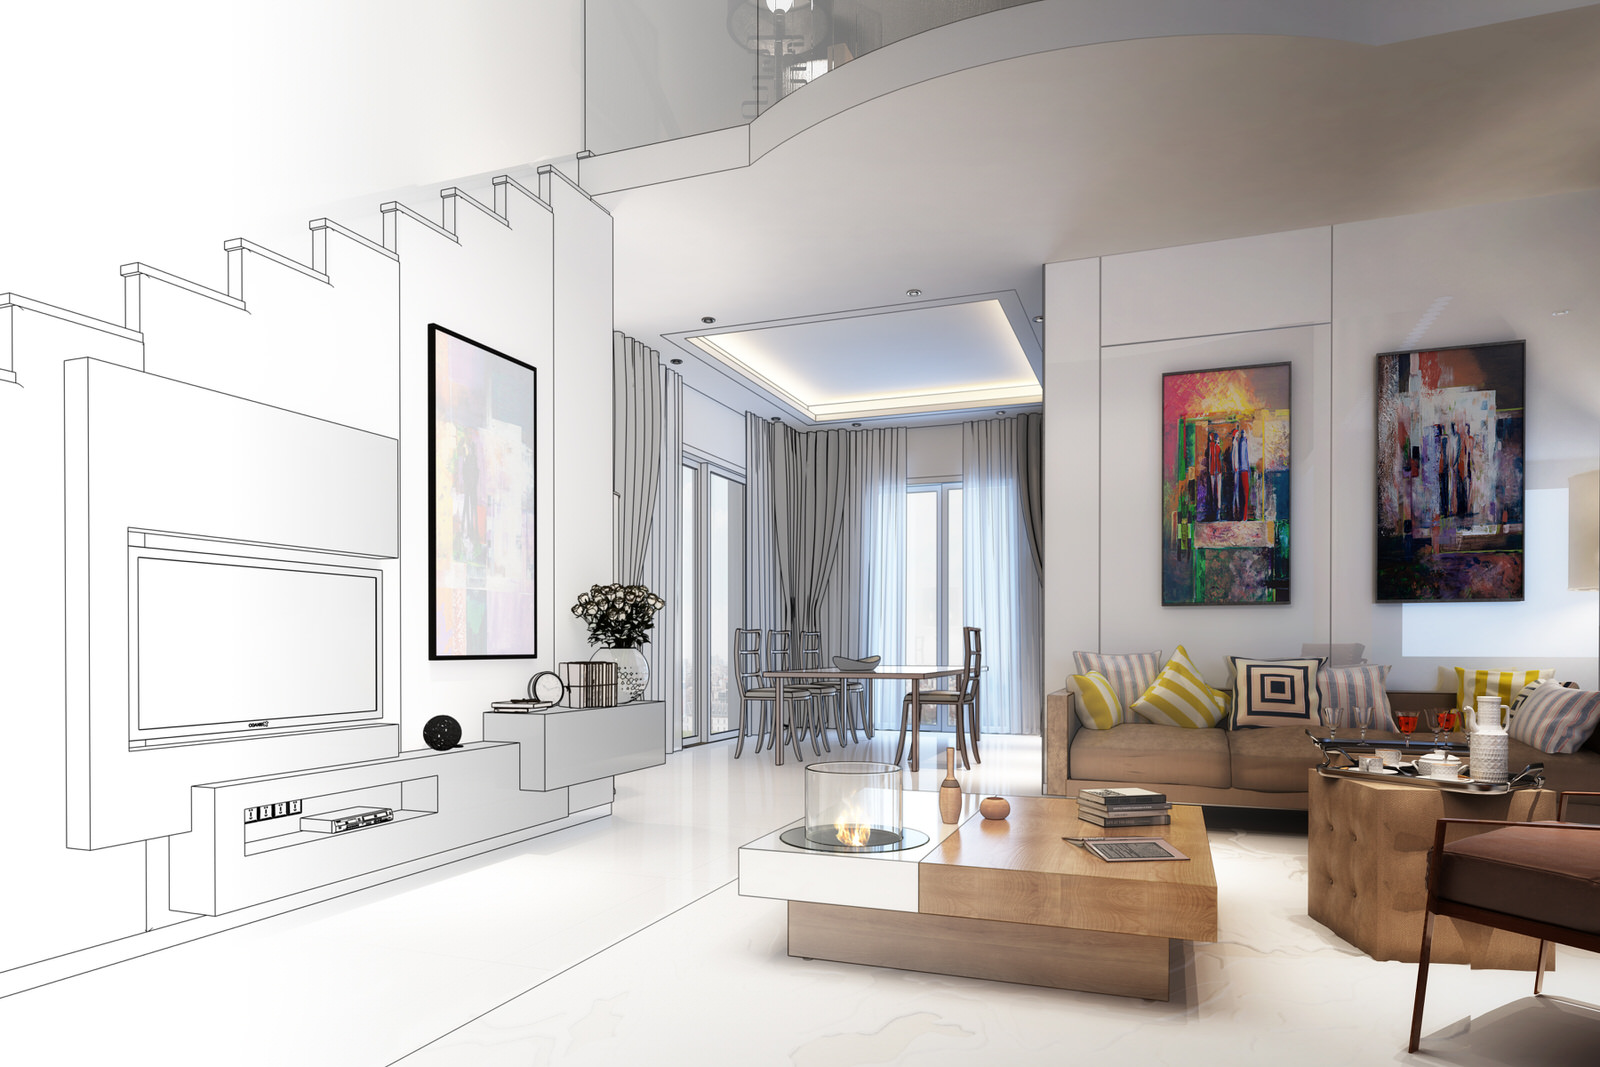 Contemporary_Modern_Apartment_Interior_Design_Wall_Mounted_Television_bespoke_joinery_Sketch_photograph